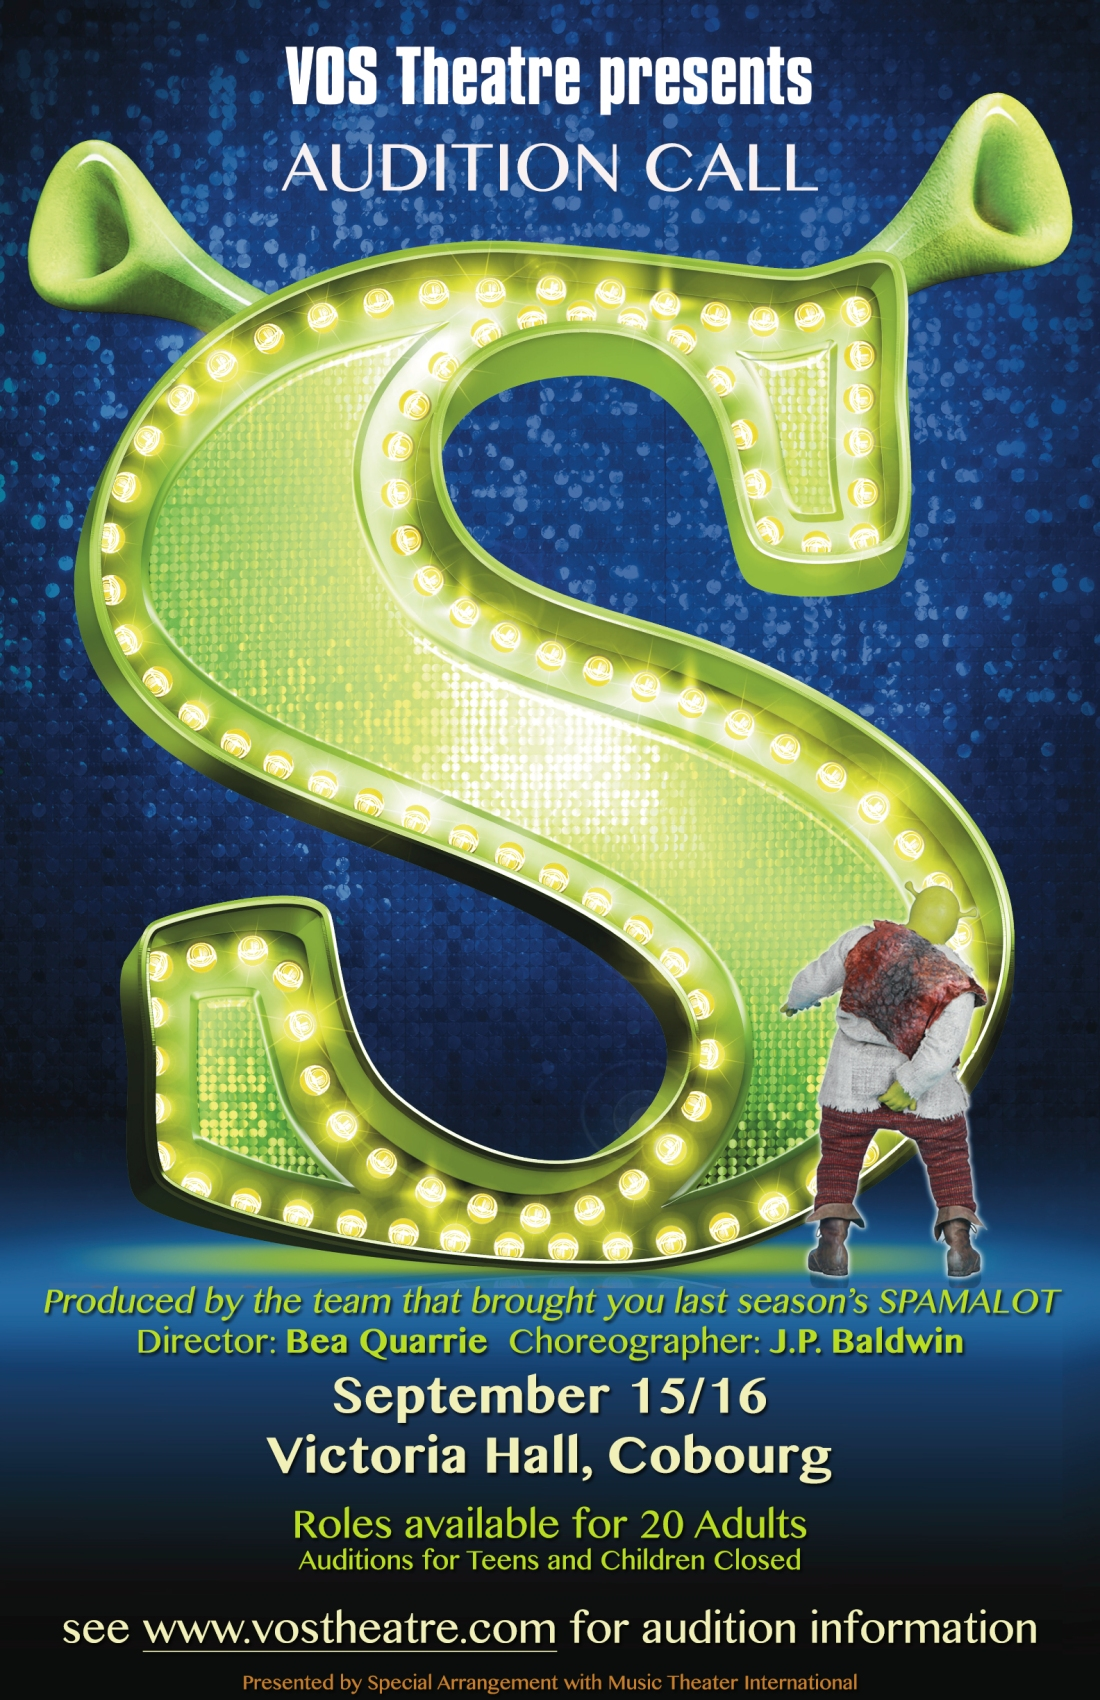 Auditions for Shrek the Musical are this Weekend!